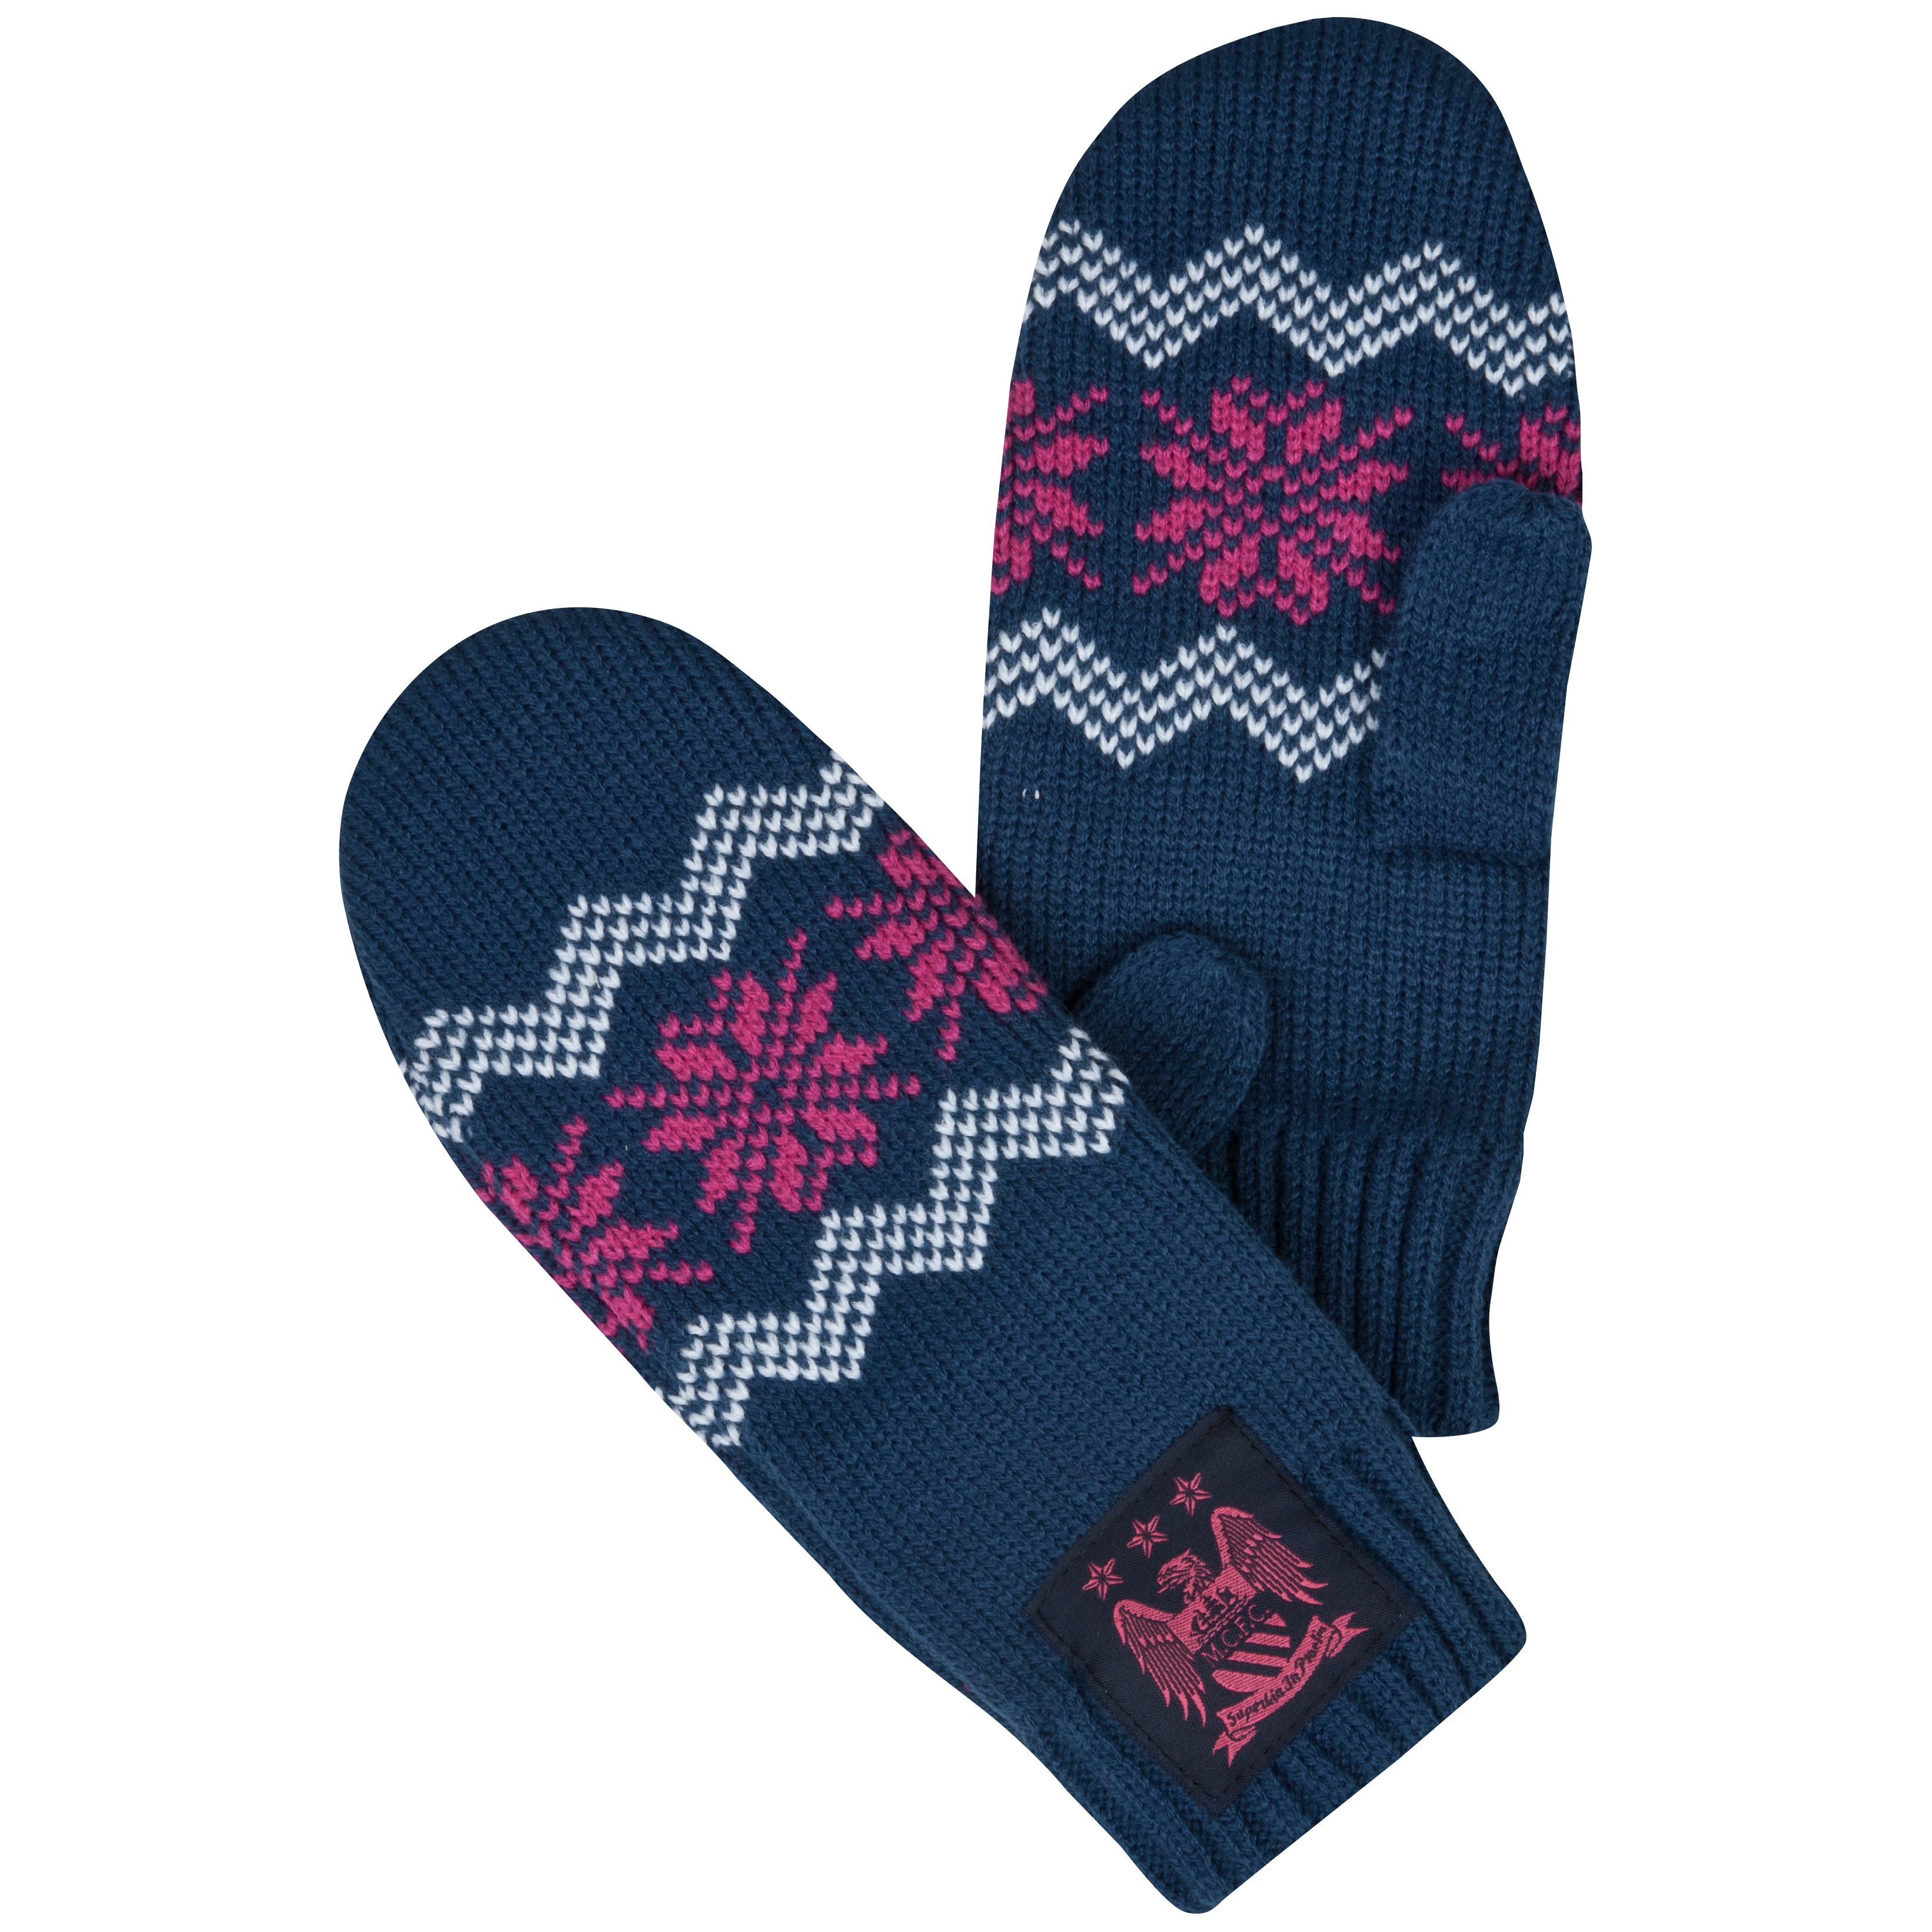 Manchester City Moston Mittens - Navy/Pink - Junior